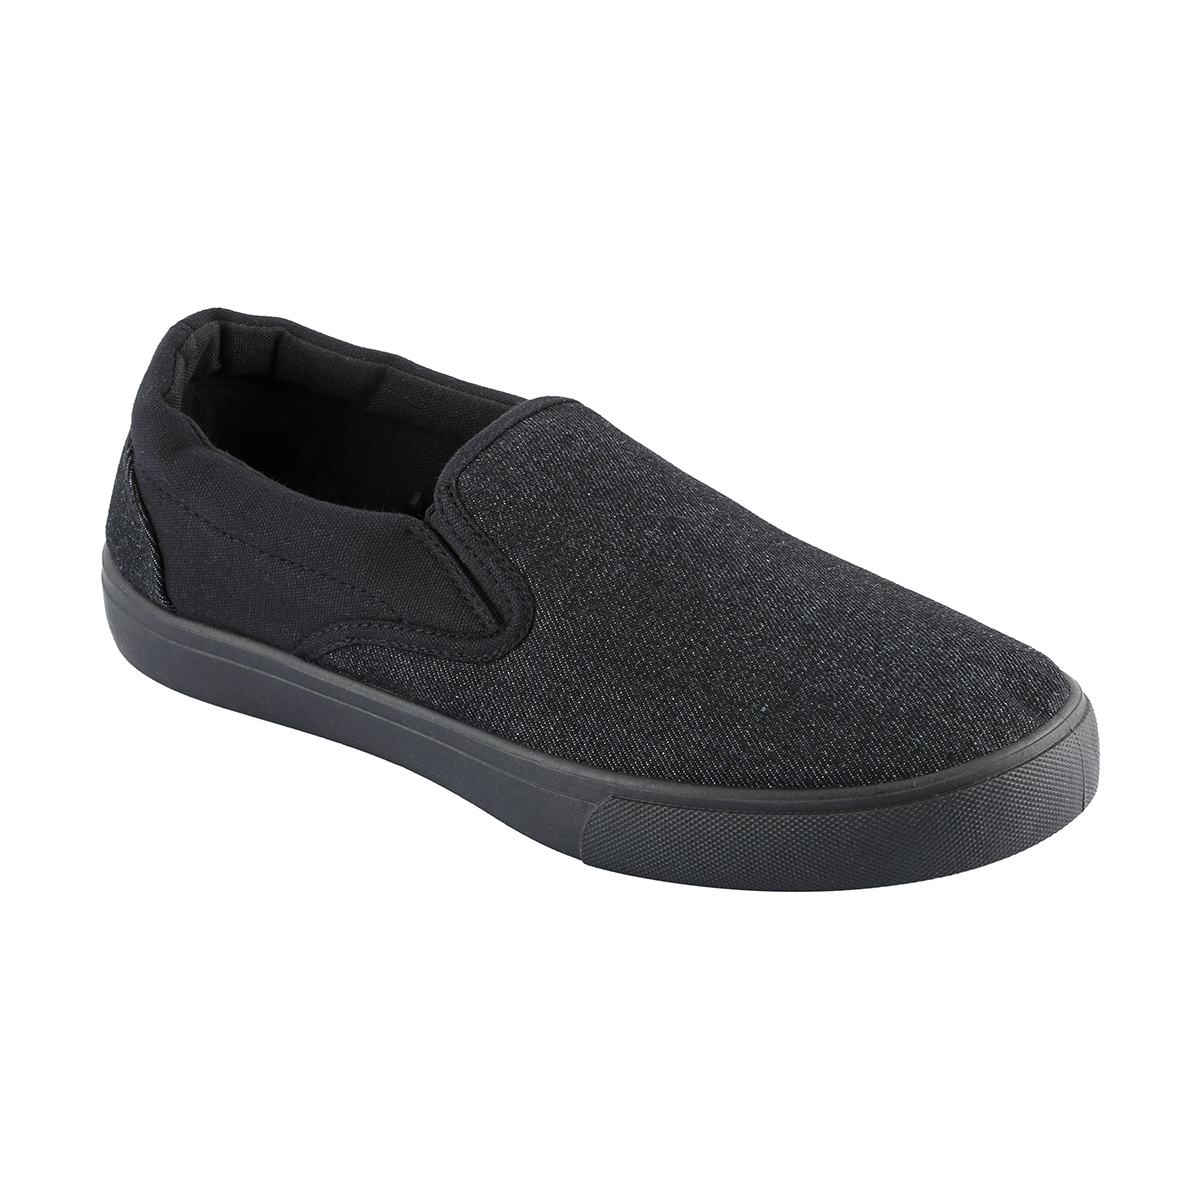 Find great deals on eBay for kmart shoes. Shop with confidence.